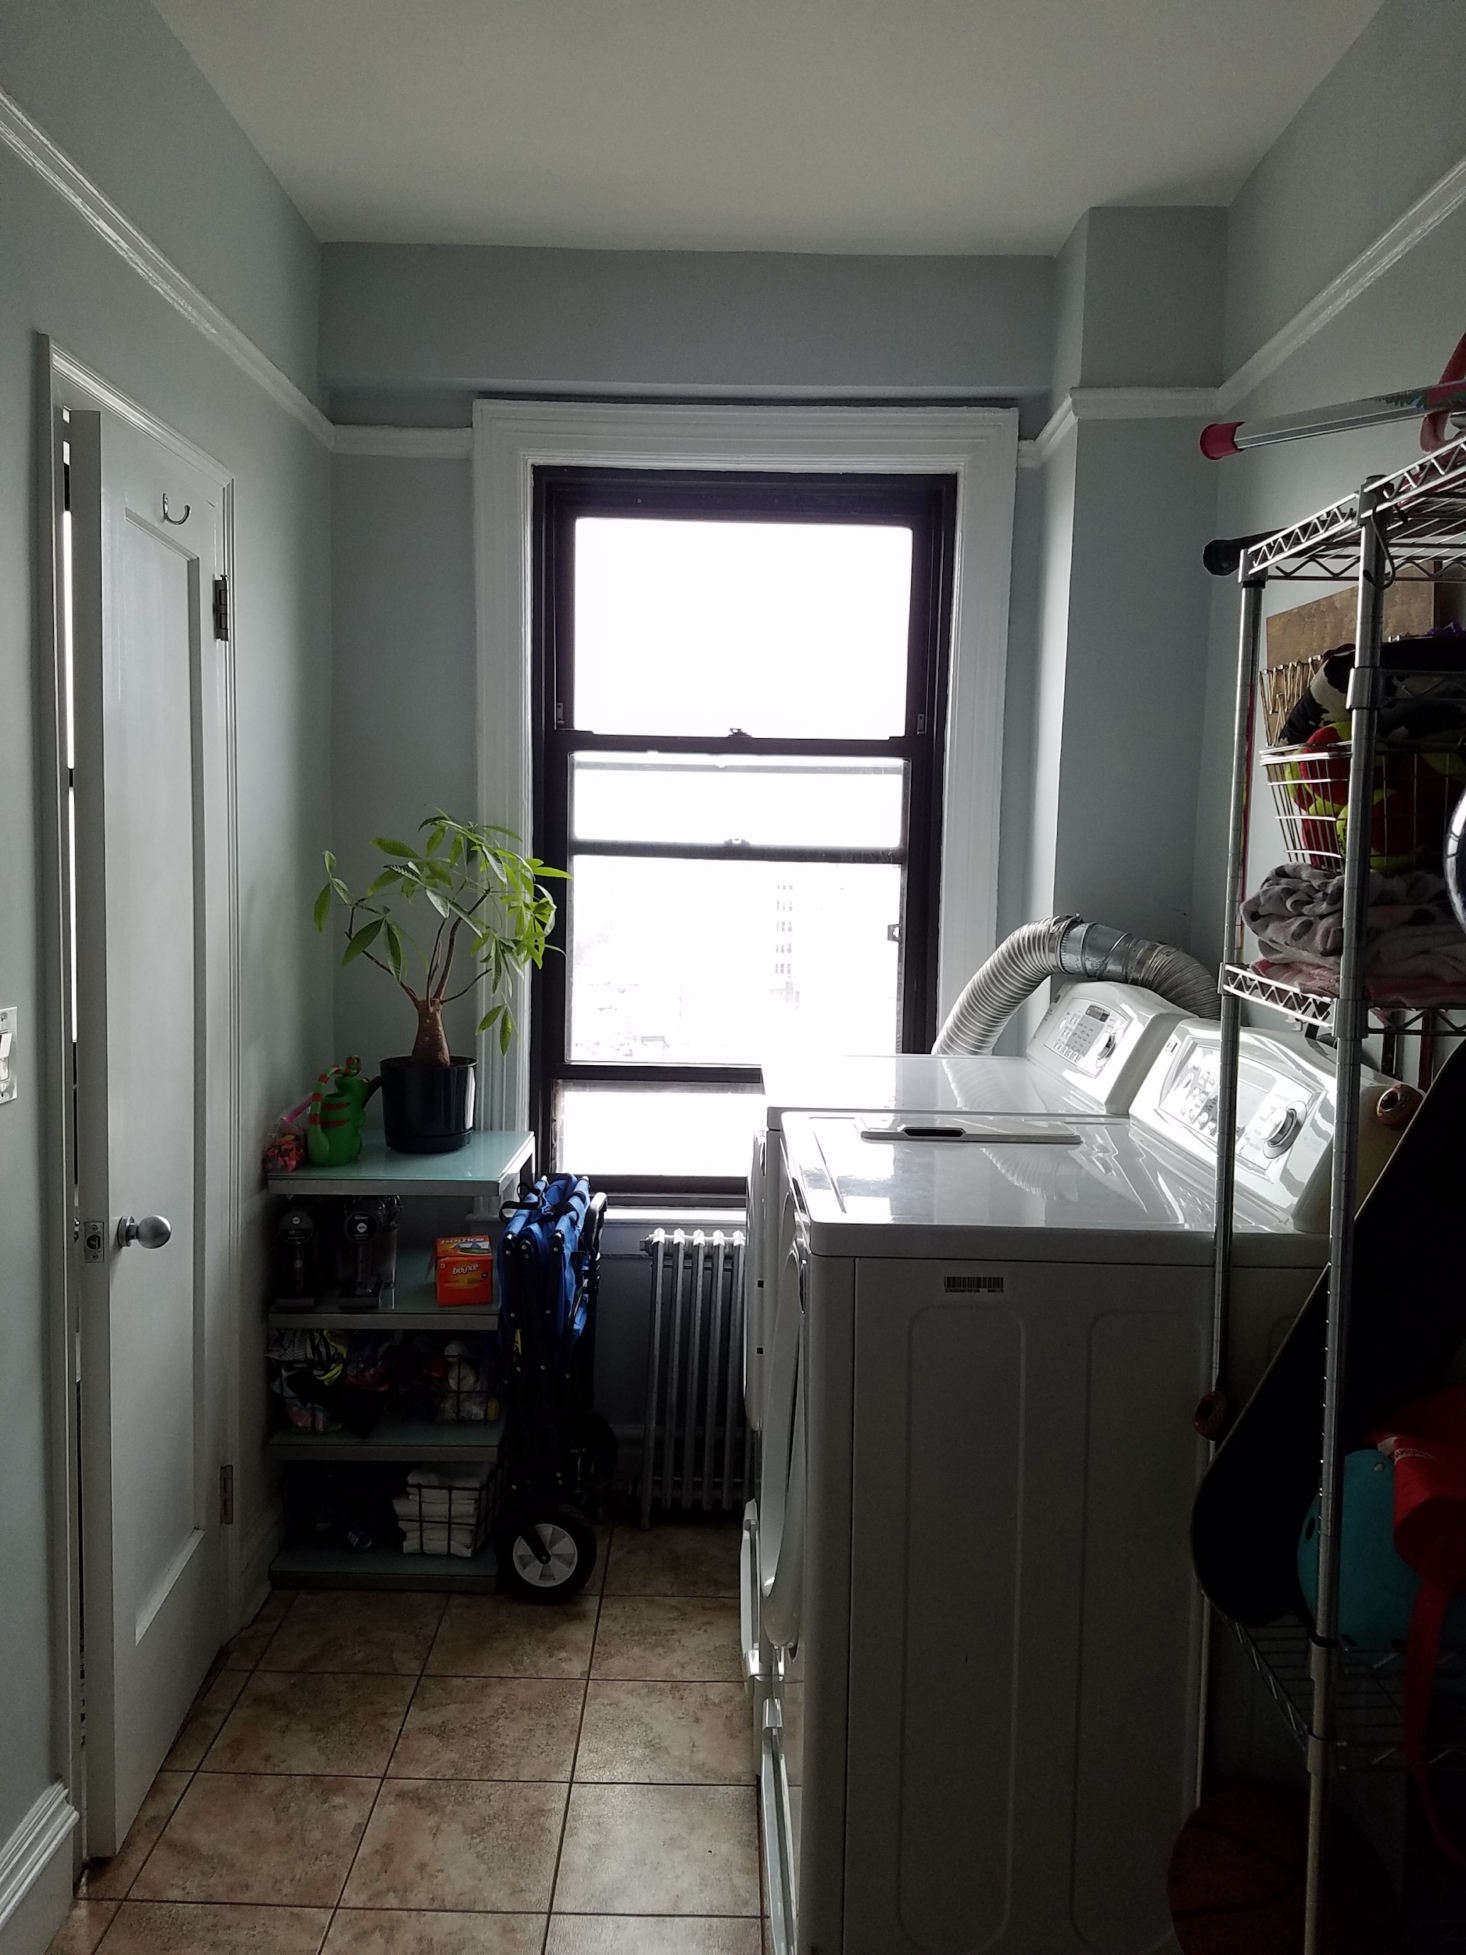 One of the staff rooms was used as a utility closet.